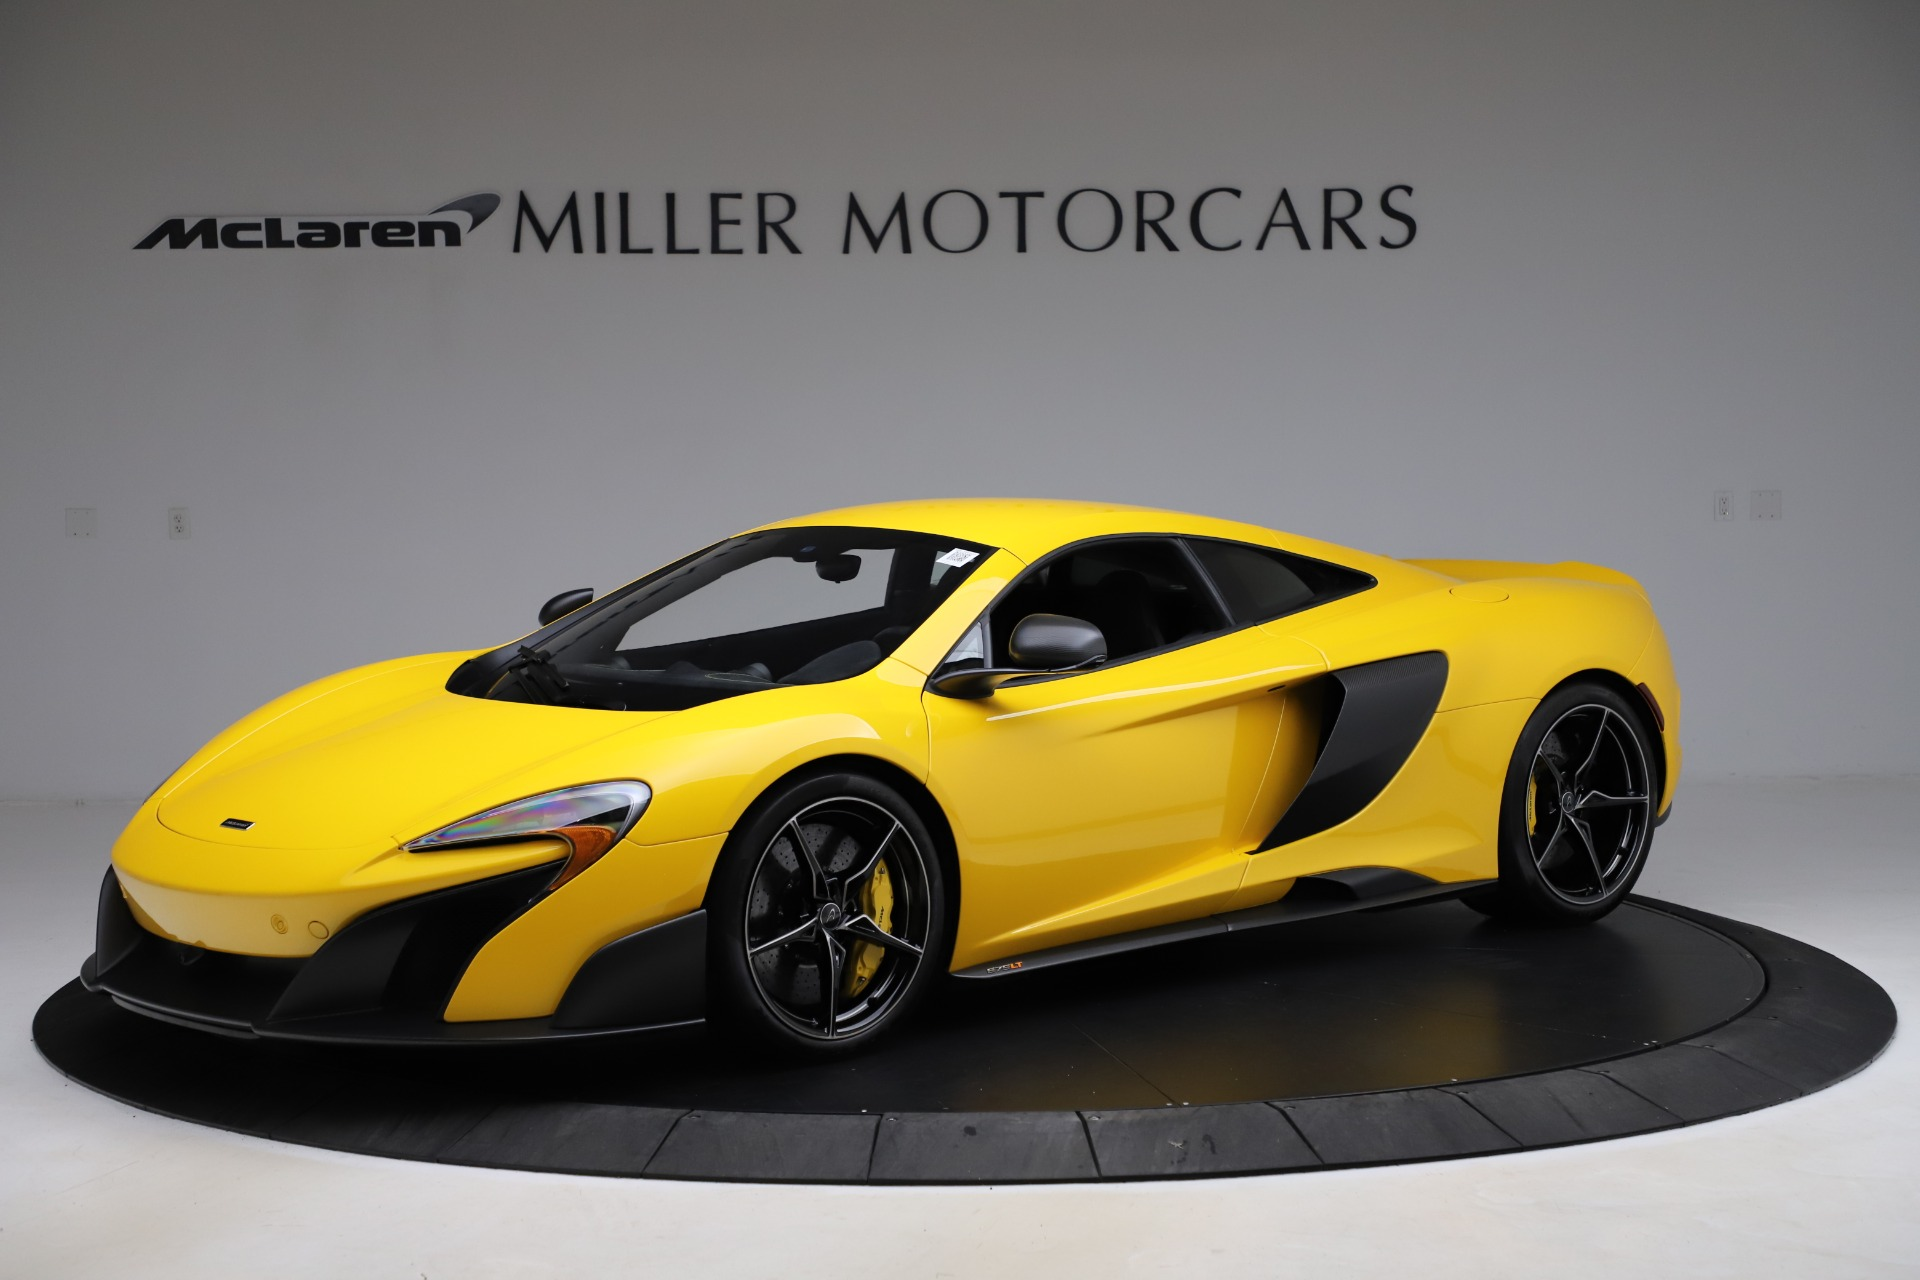 Used 2016 McLaren 675LT Coupe for sale $225,900 at Pagani of Greenwich in Greenwich CT 06830 1